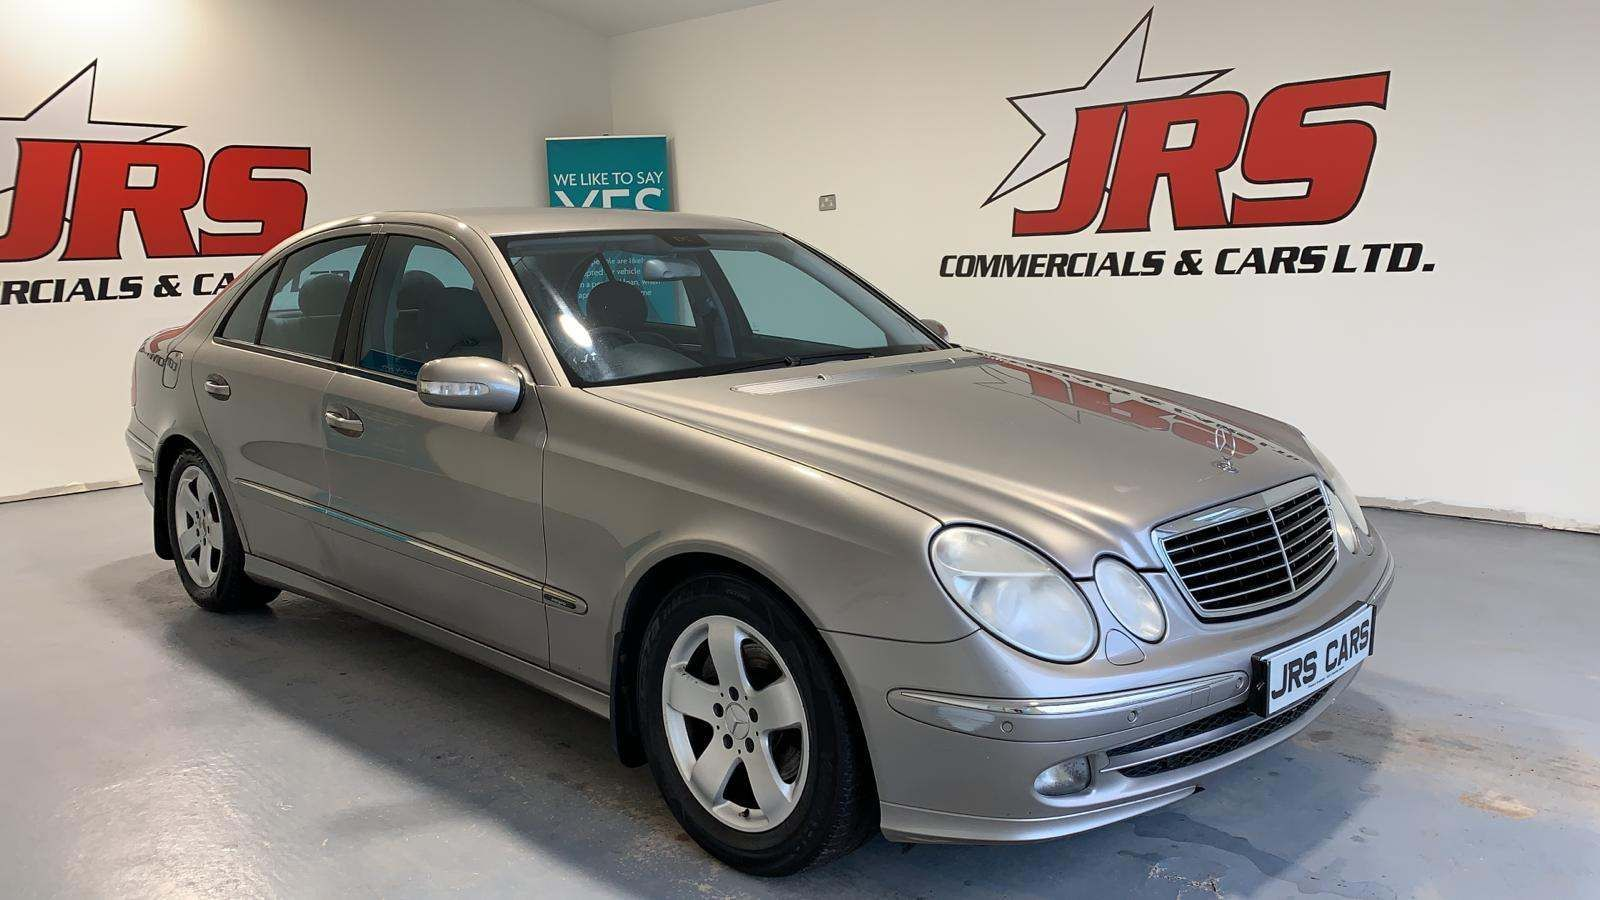 2005 MERCEDES BENZ E Class 2.1 E220 CDI Avantgarde Diesel Automatic  – J R S Commercials And Cars Dungannon